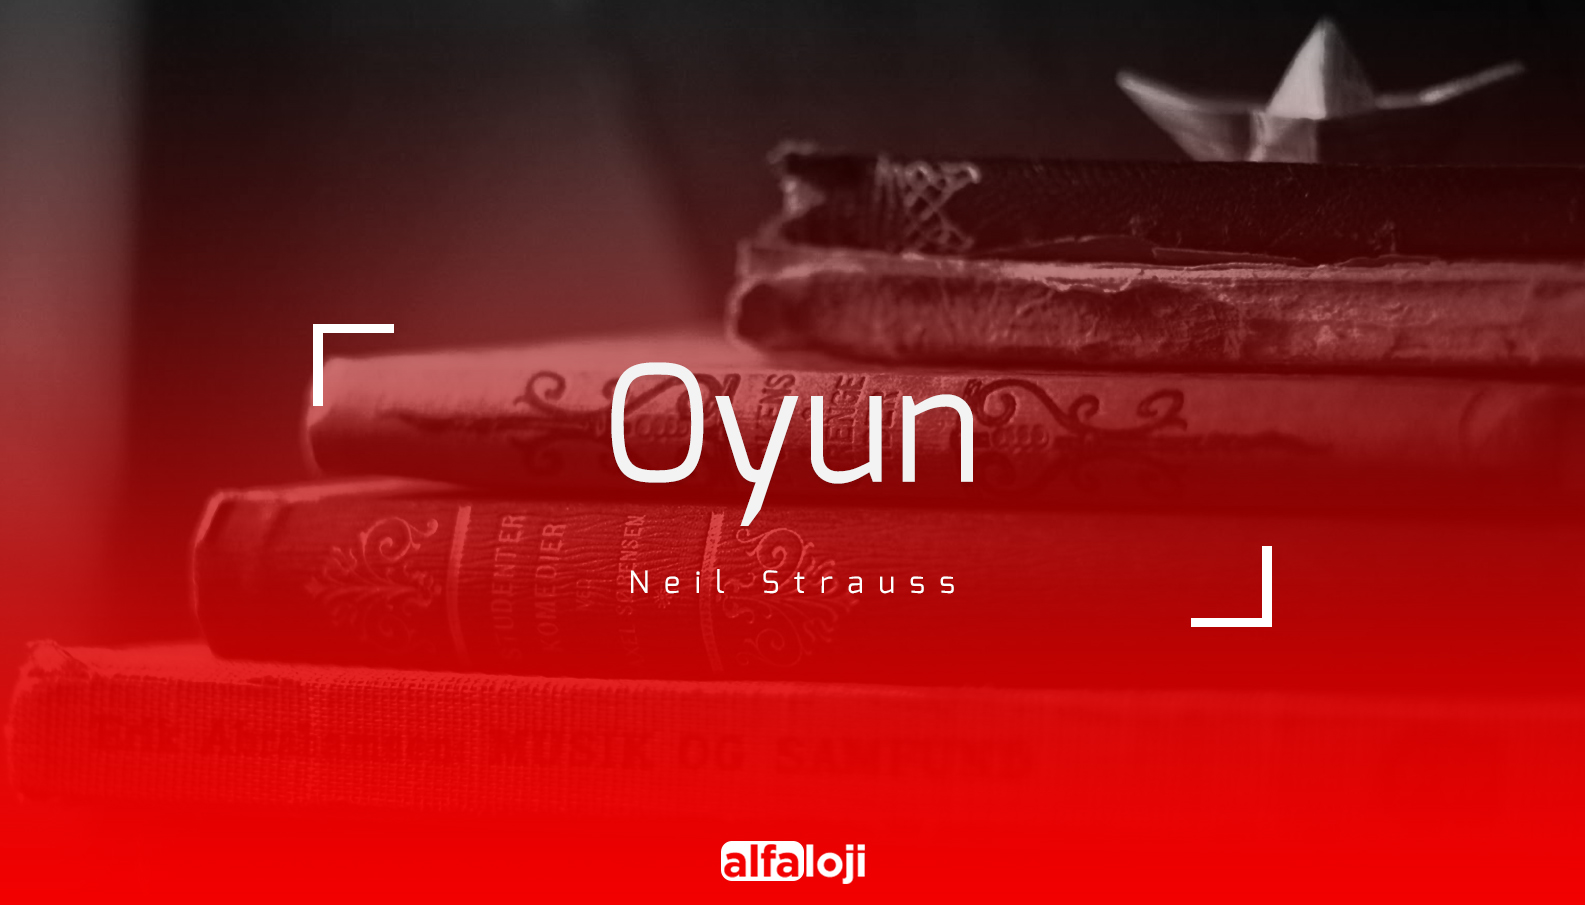 Neil Strauss - Oyun